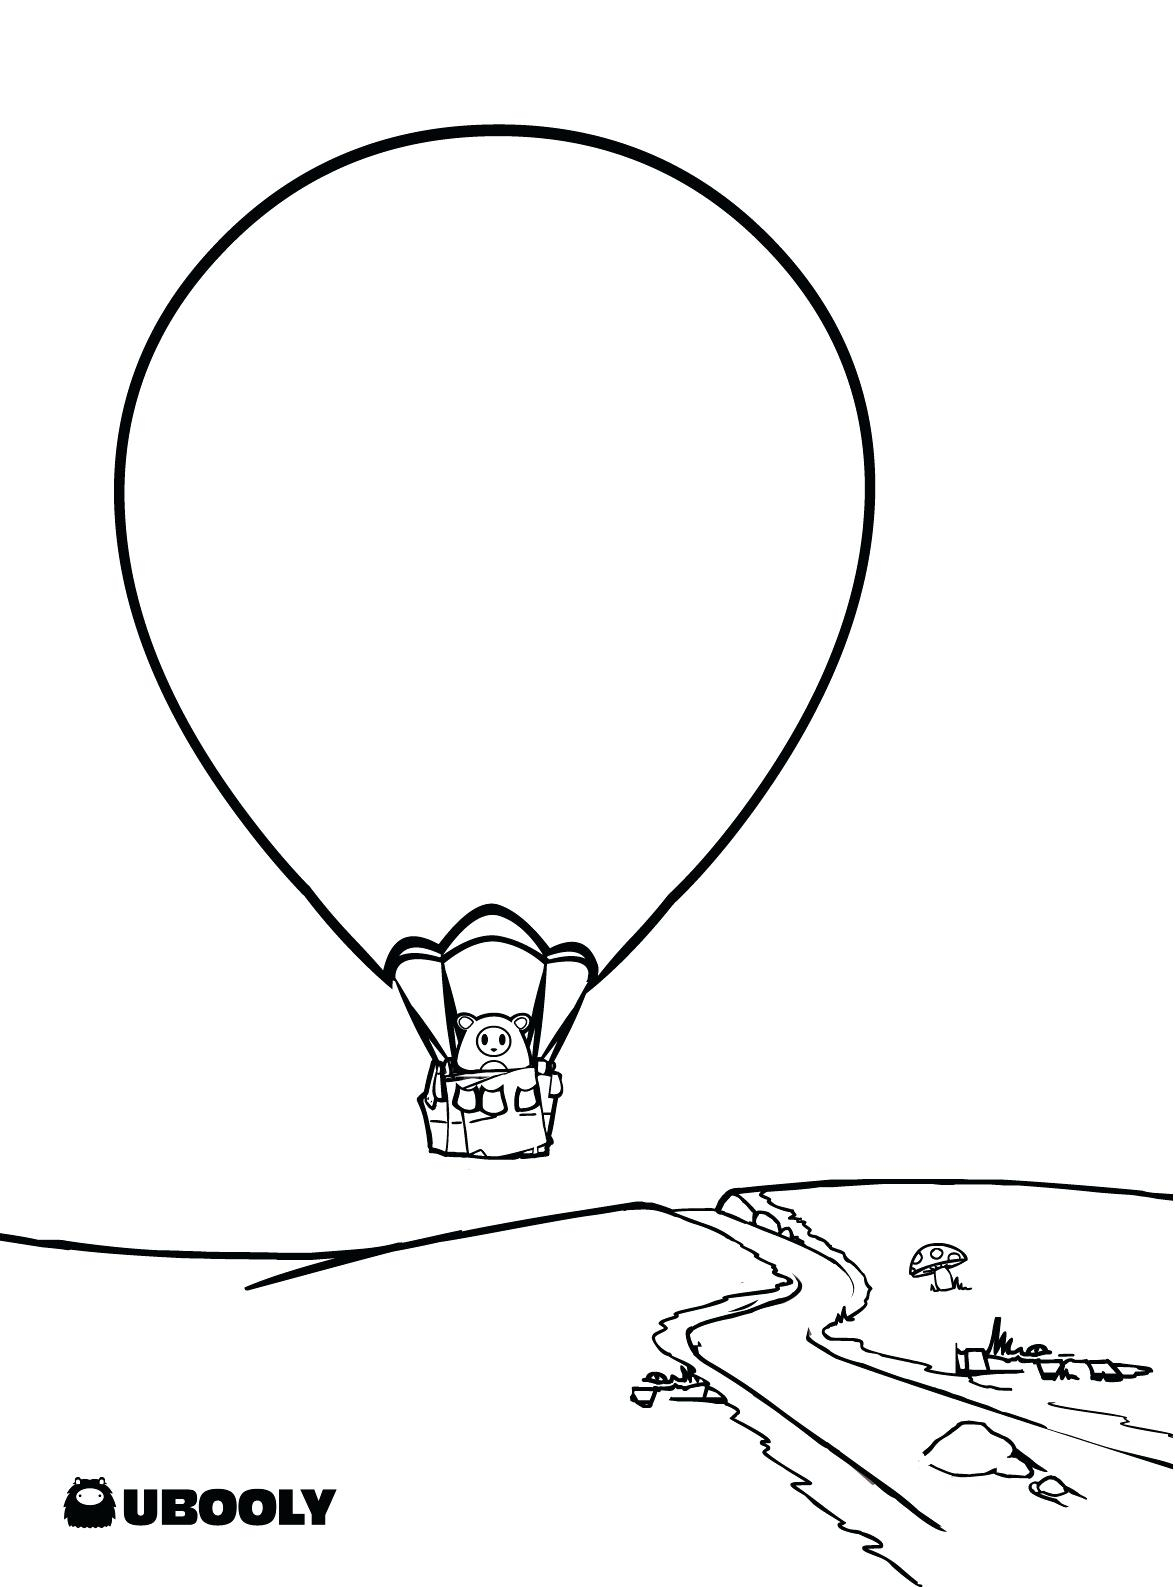 Hot Air Balloon Coloring Pages with Stars Image Free Printable Kids Printable Of Hot Air Balloon Coloring Page Collection